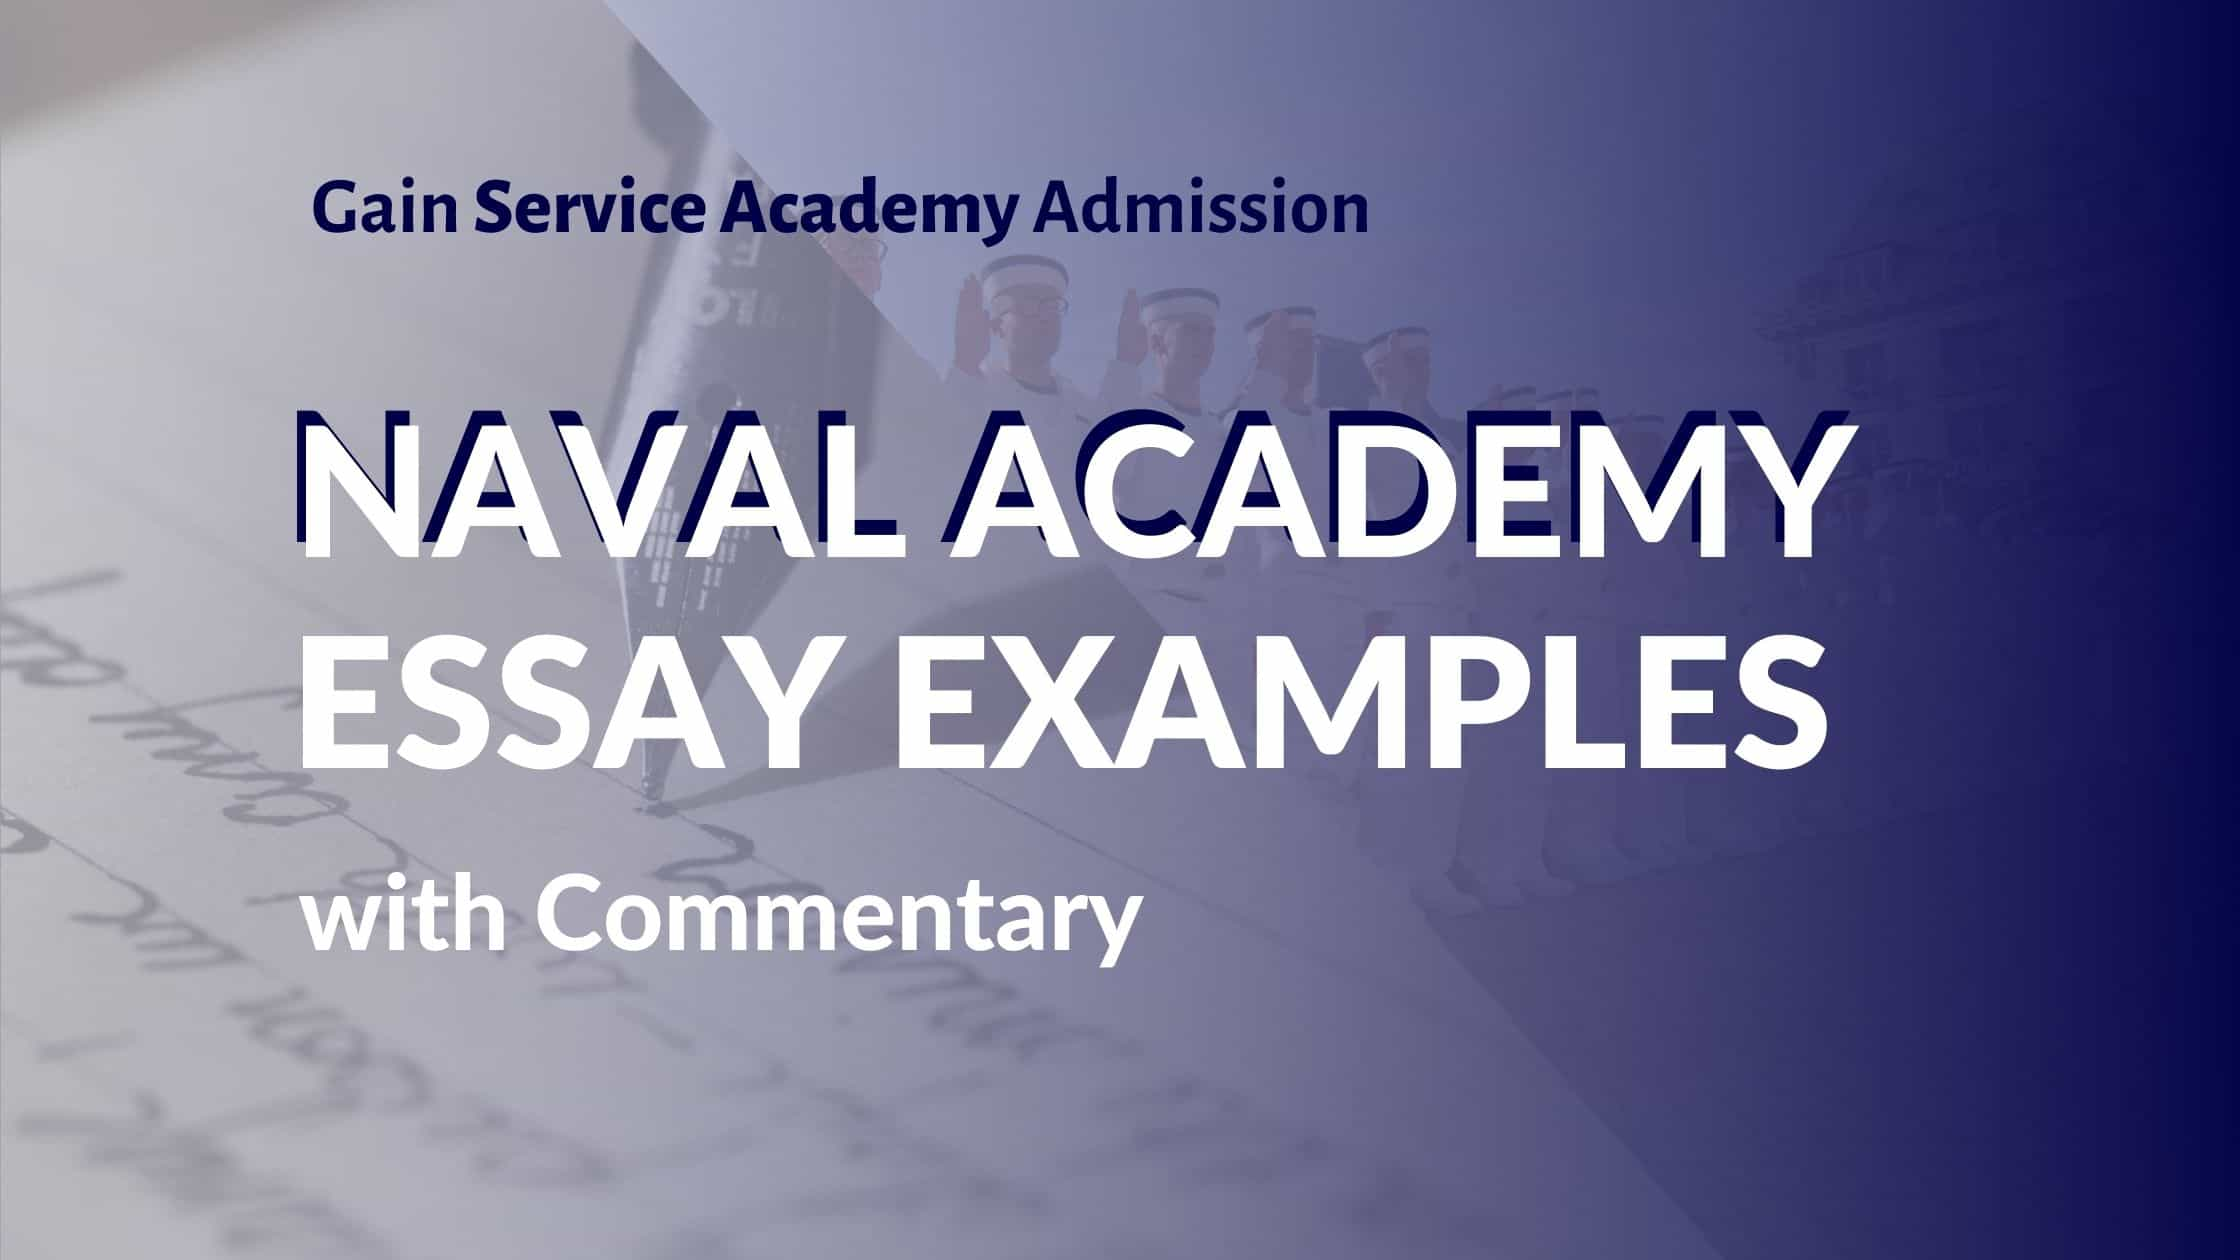 Naval Academy Essay Examples - How to get into Annapolis Blog Title Graphic